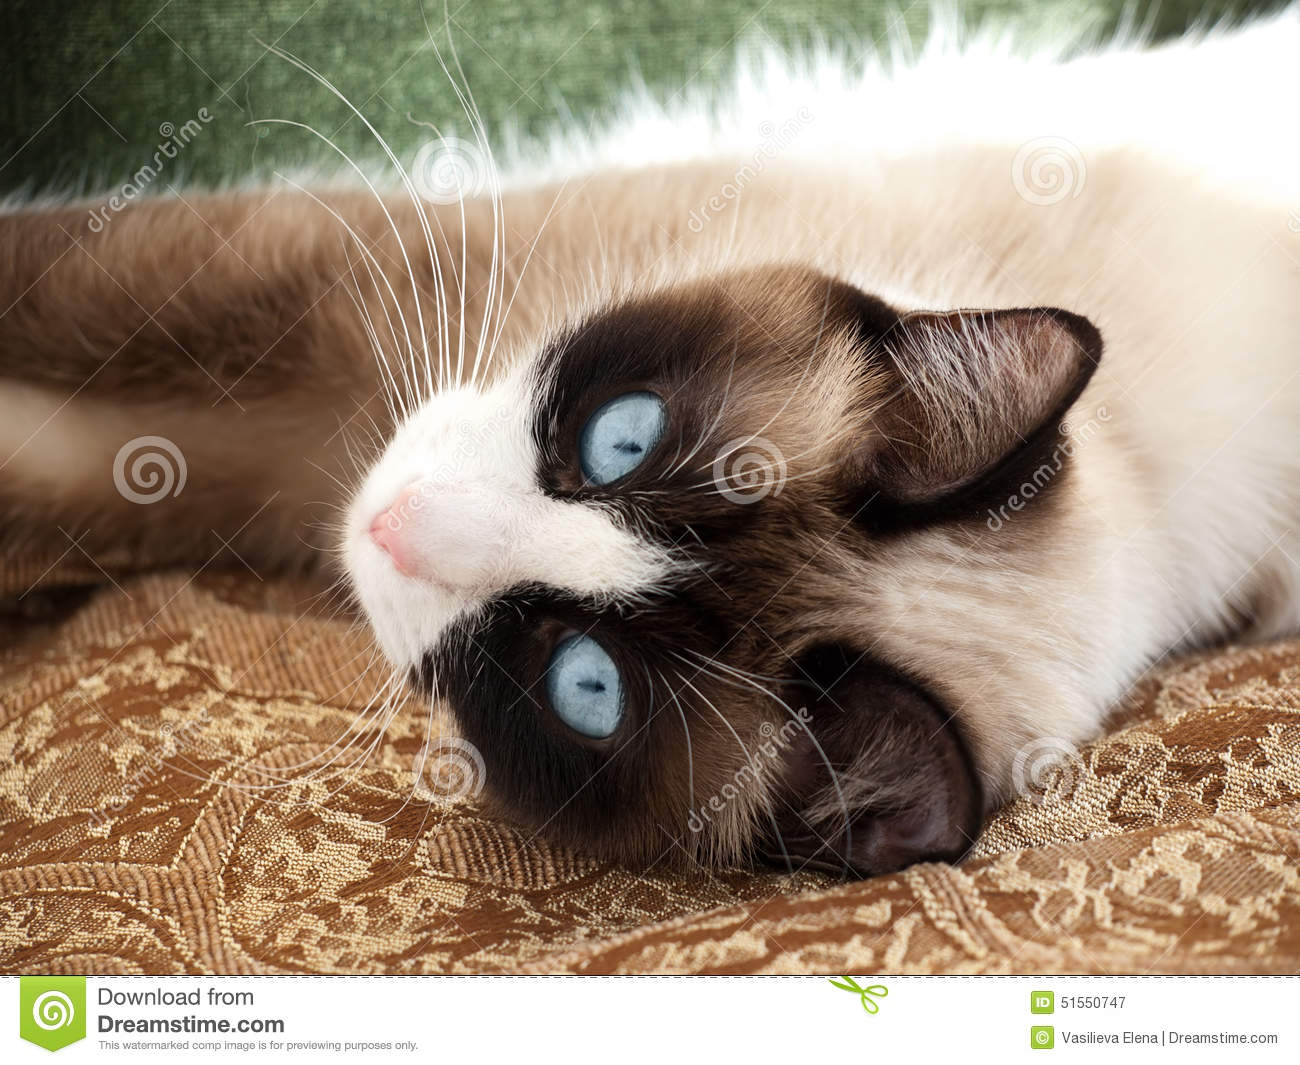 Pretty cat with blue eyes breed snowshoe